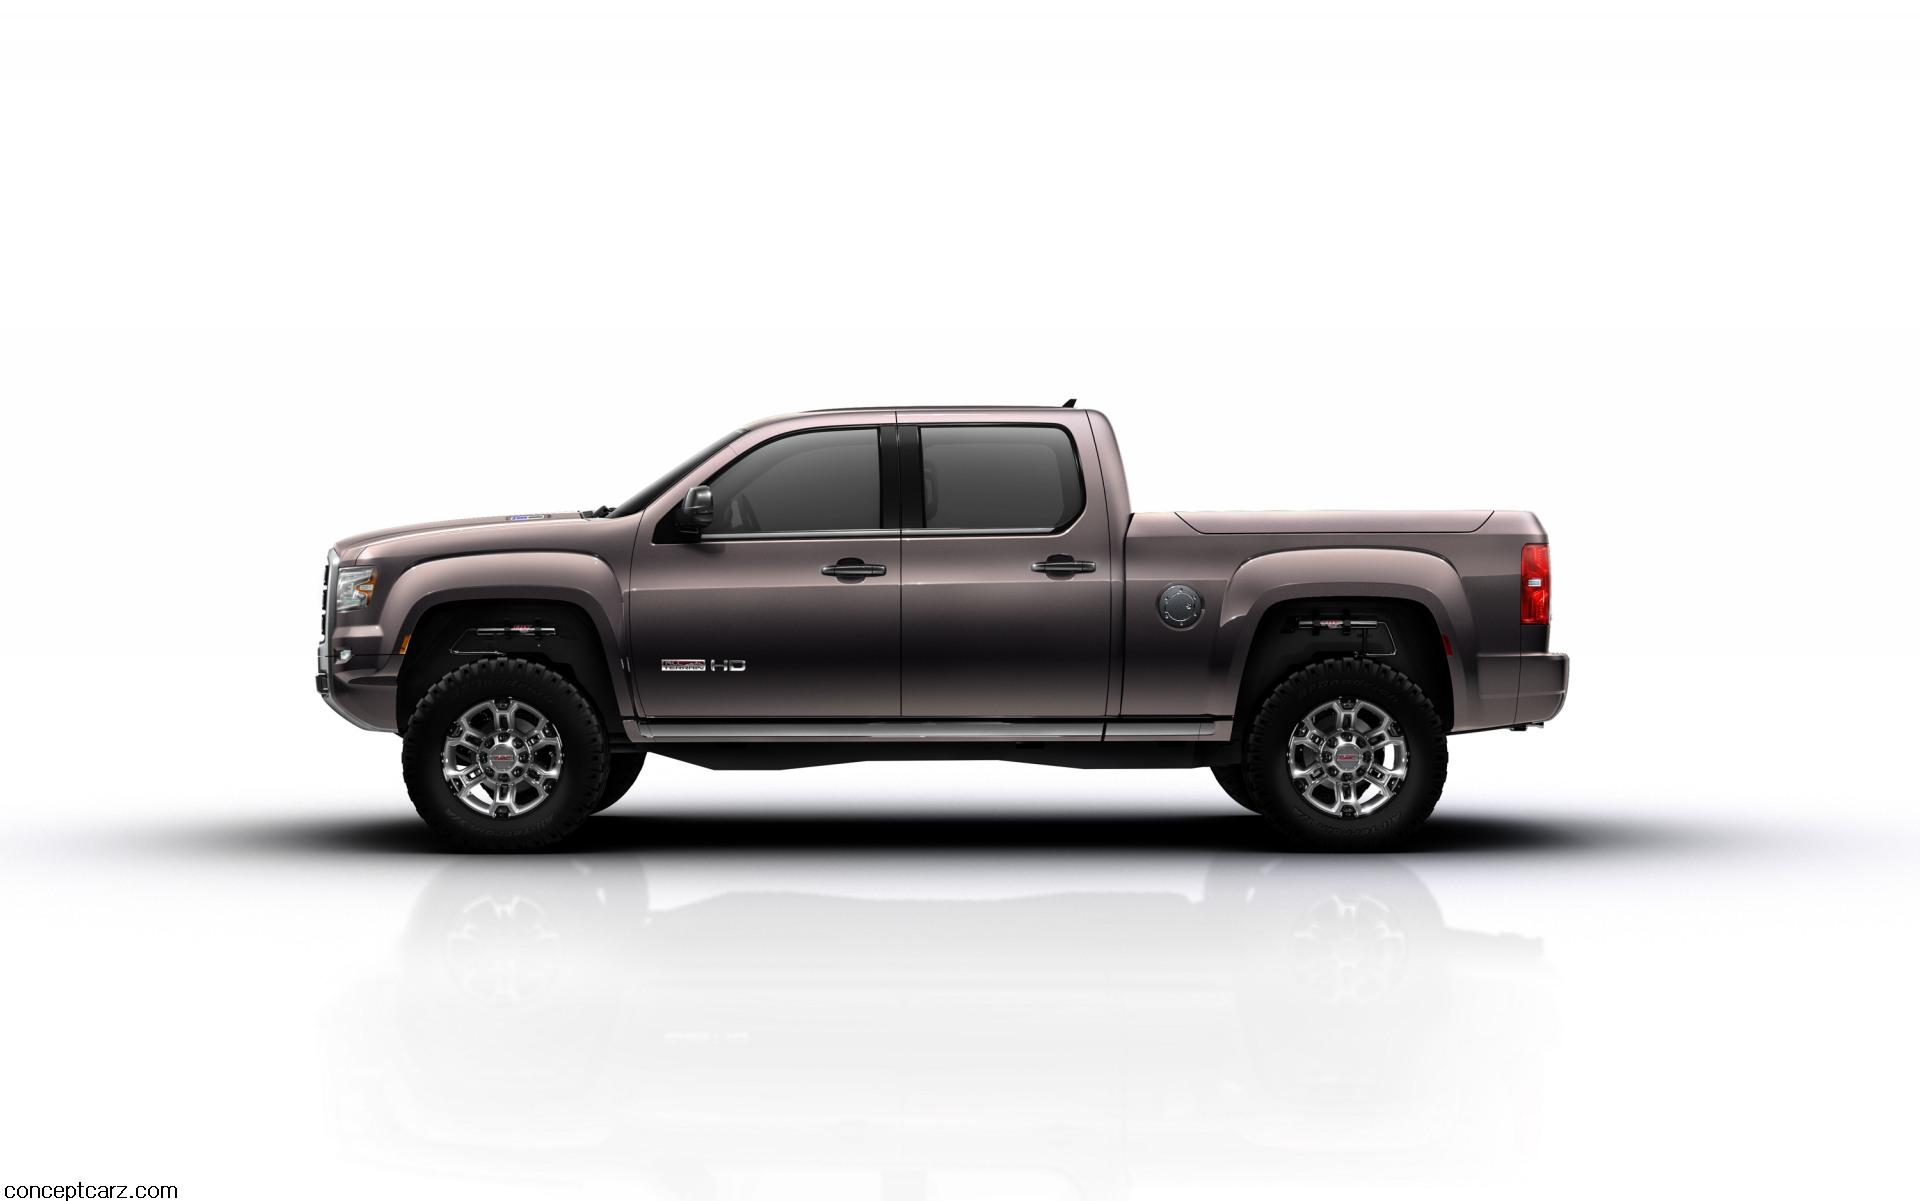 2011 Gmc Sierra All Terrain Hd Concept News And Information Gm Duramax Sel Engine Research Pricing